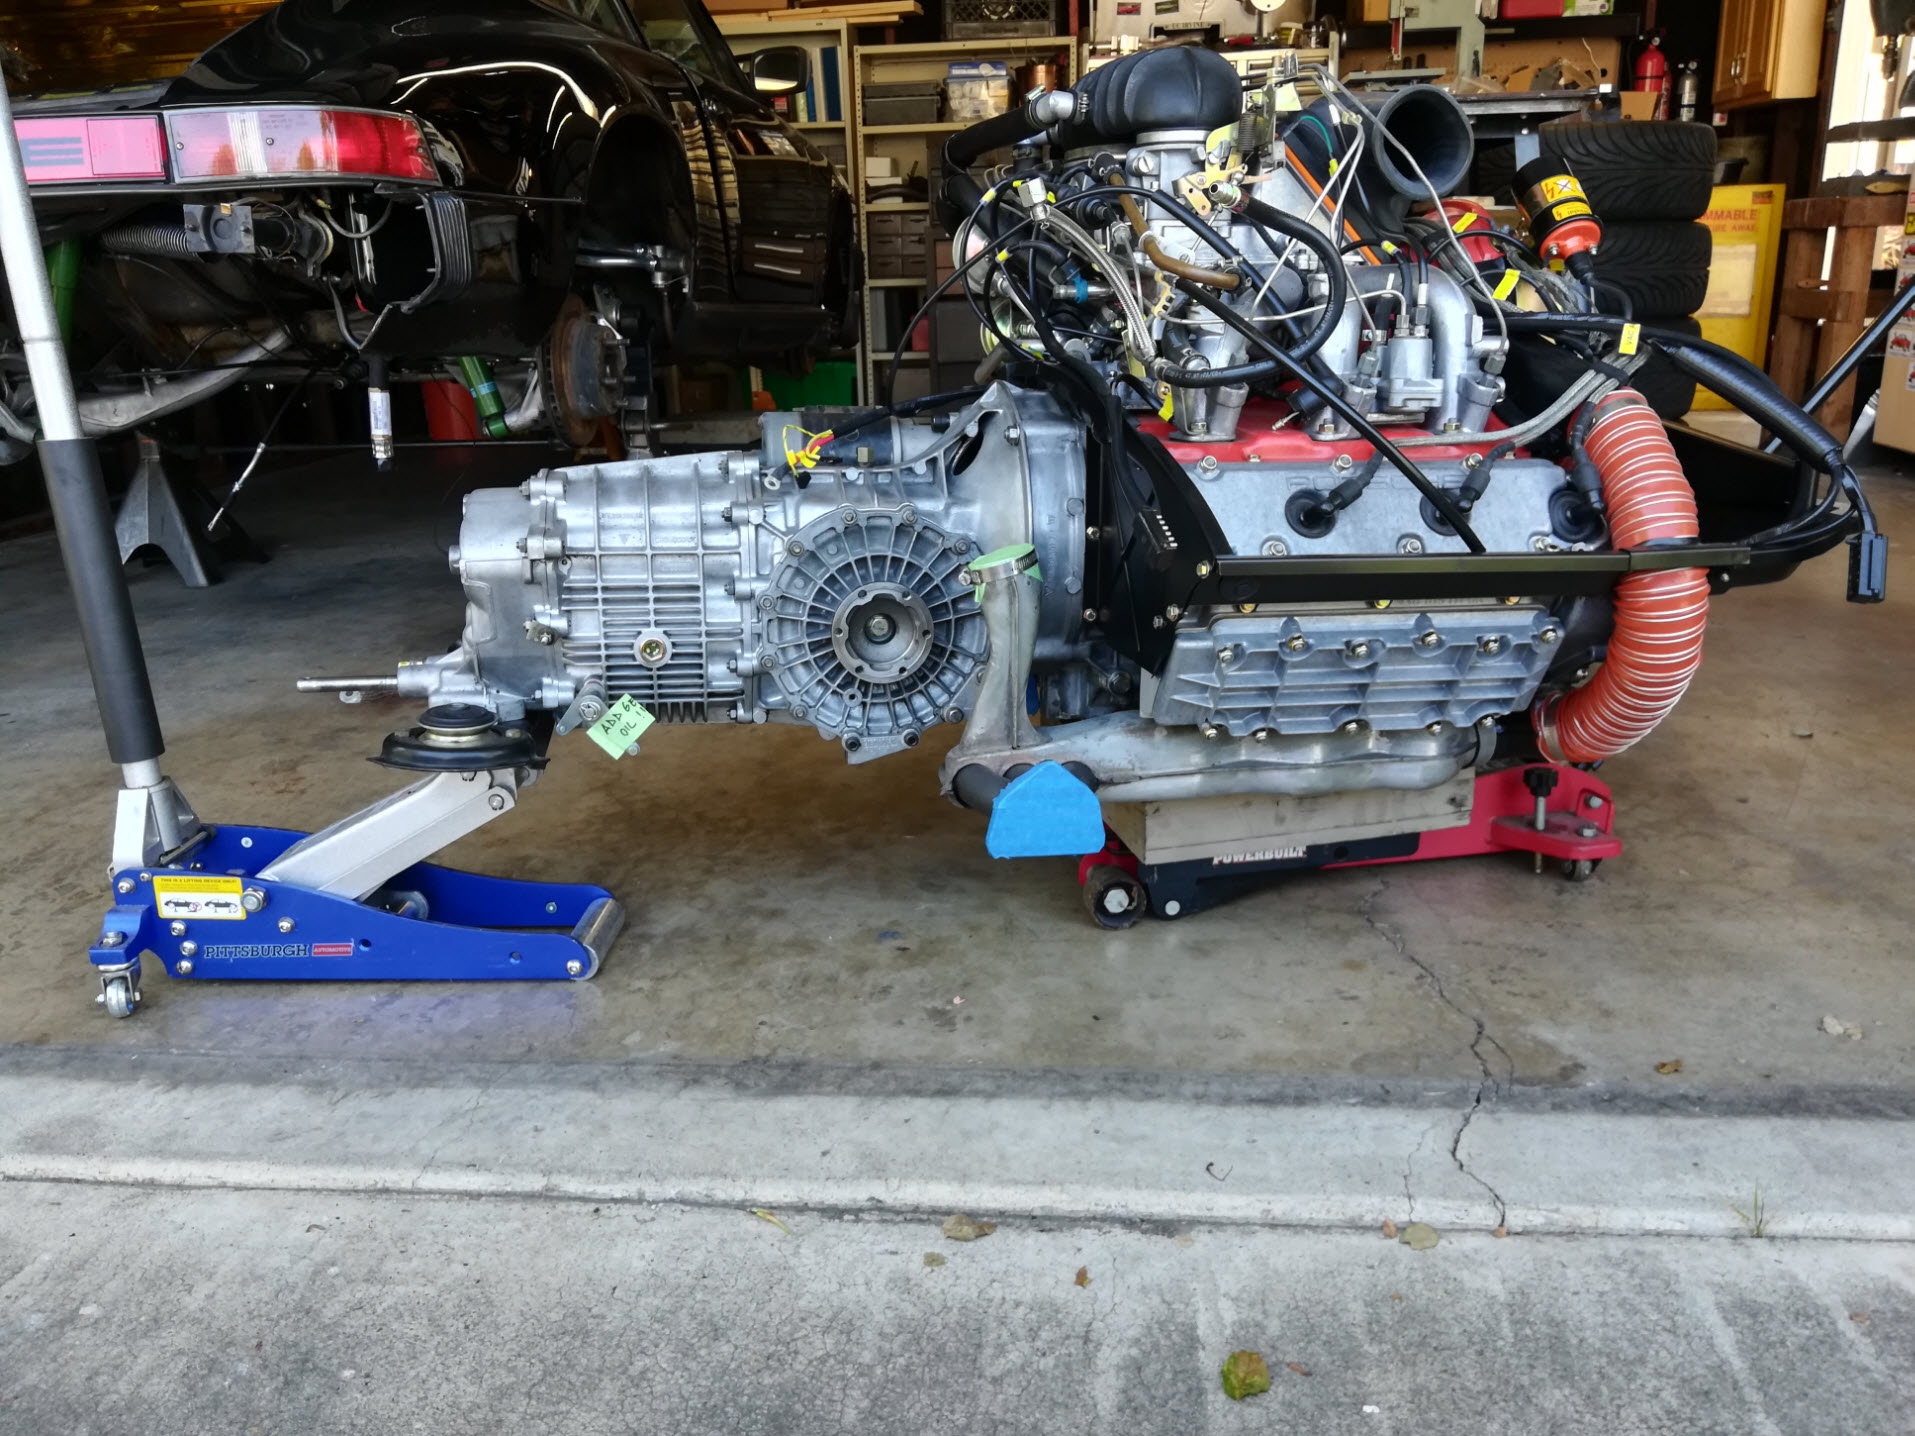 Air-cooled Porsche 911 engine and gearbox out of the car.